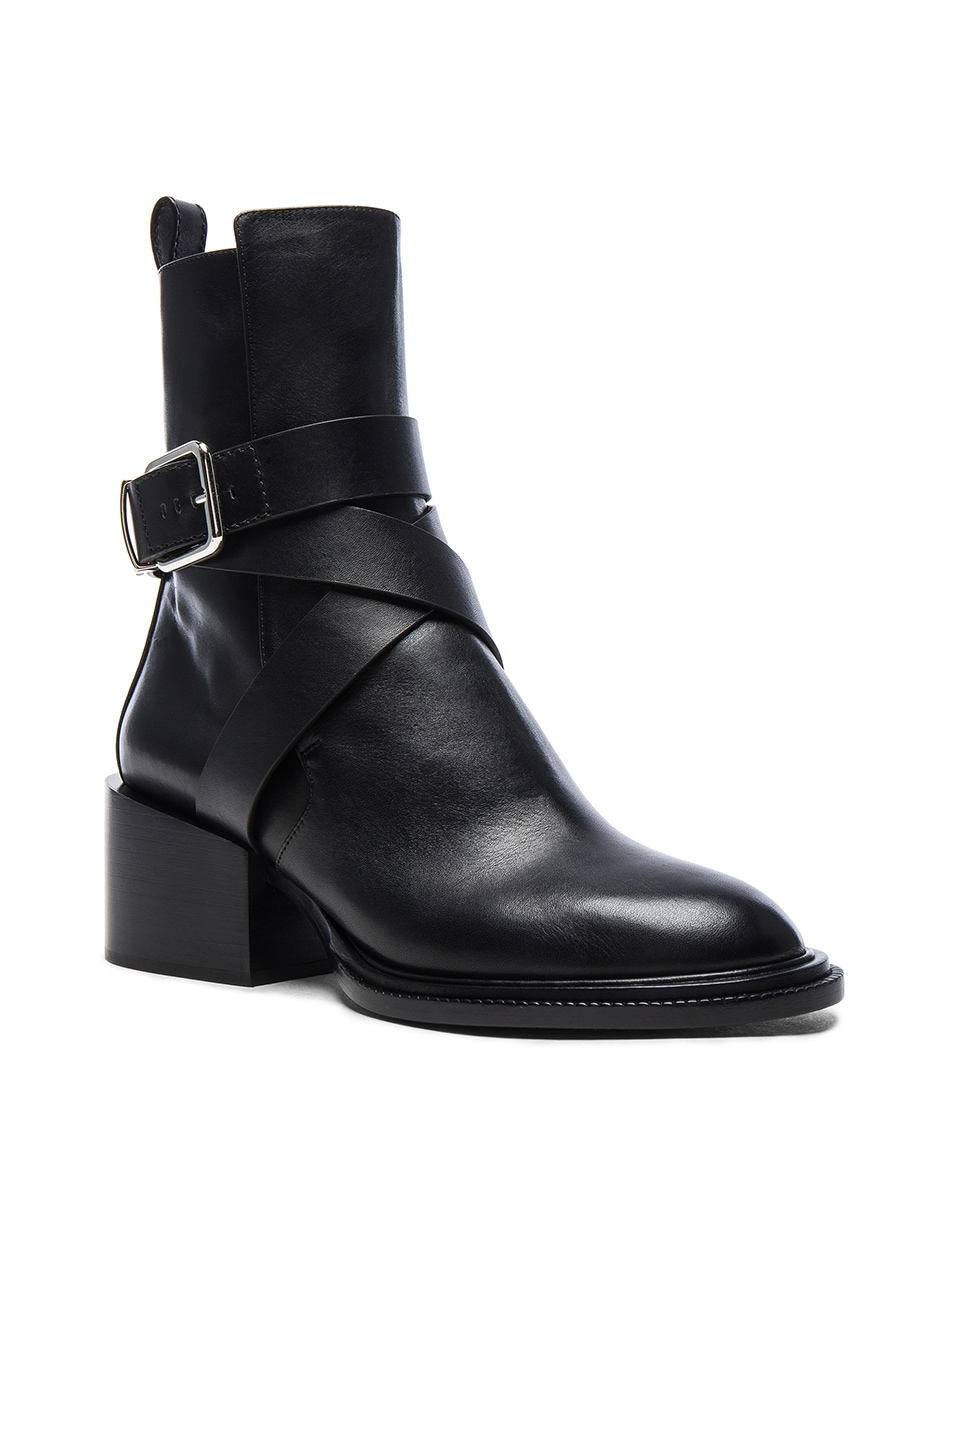 Image 2 of Jil Sander Leather Boots in Black